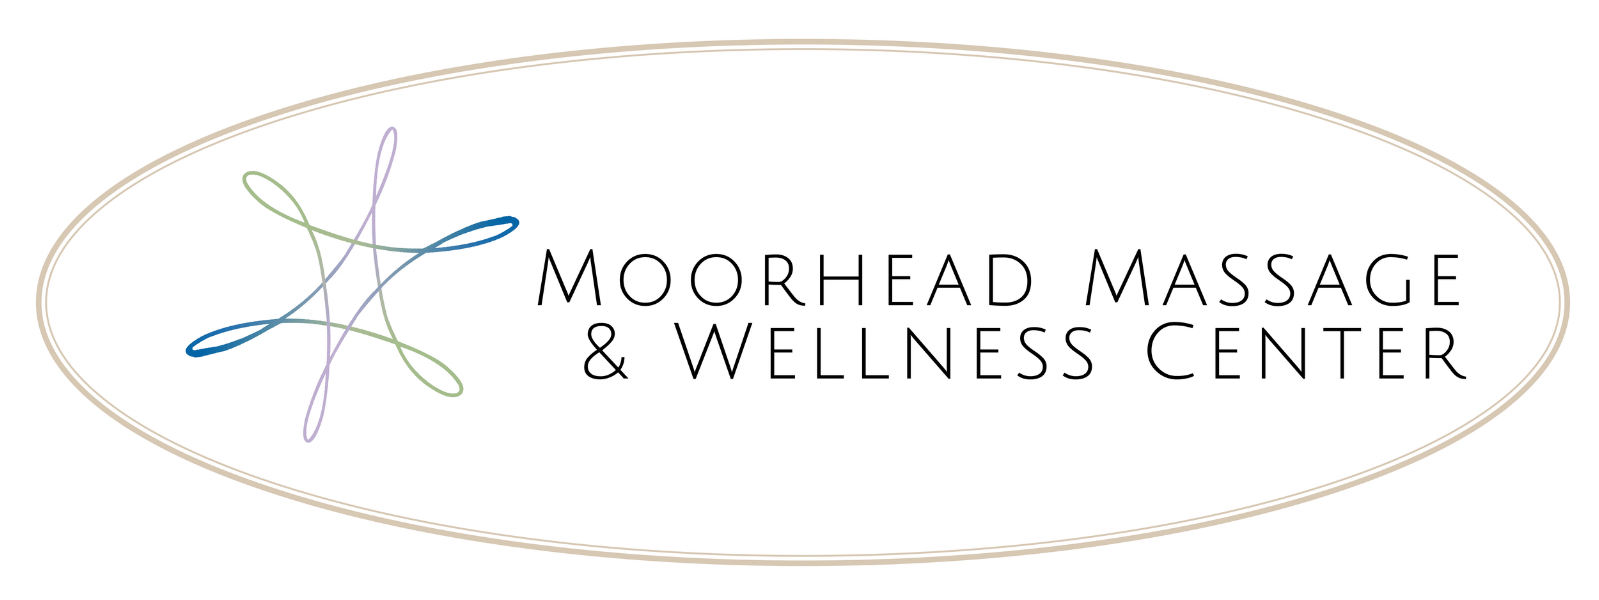 Moorhead Massage and WEllness Logo for massage and ayurveda and aromatherapy in fargo moorhead. As well as Yoga in fargo moorhead